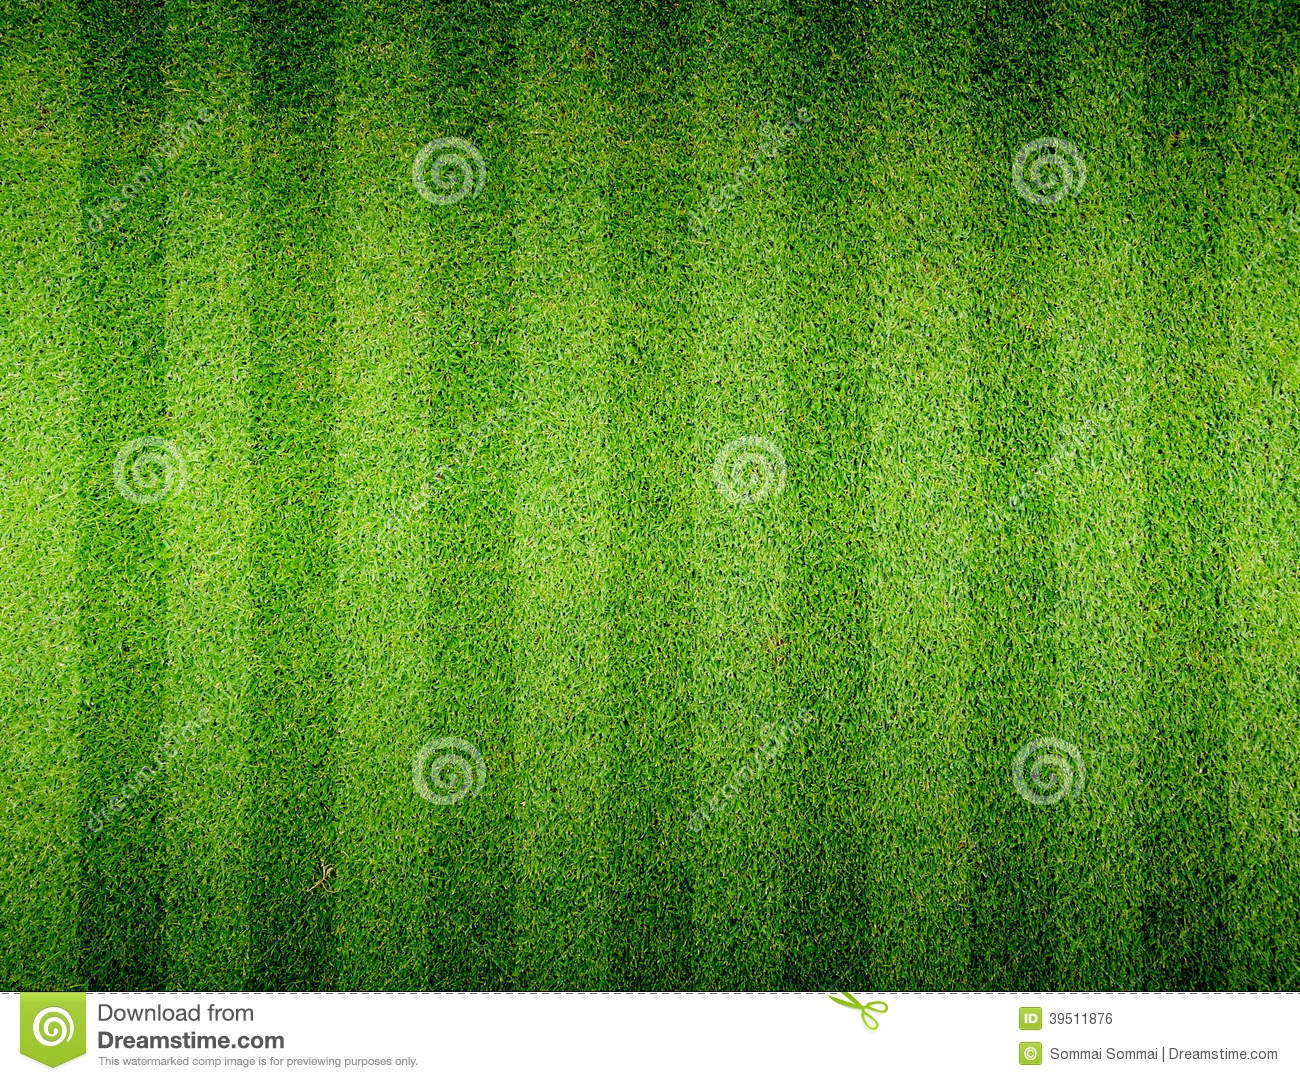 Soccer Football Grass Field Stock Photo